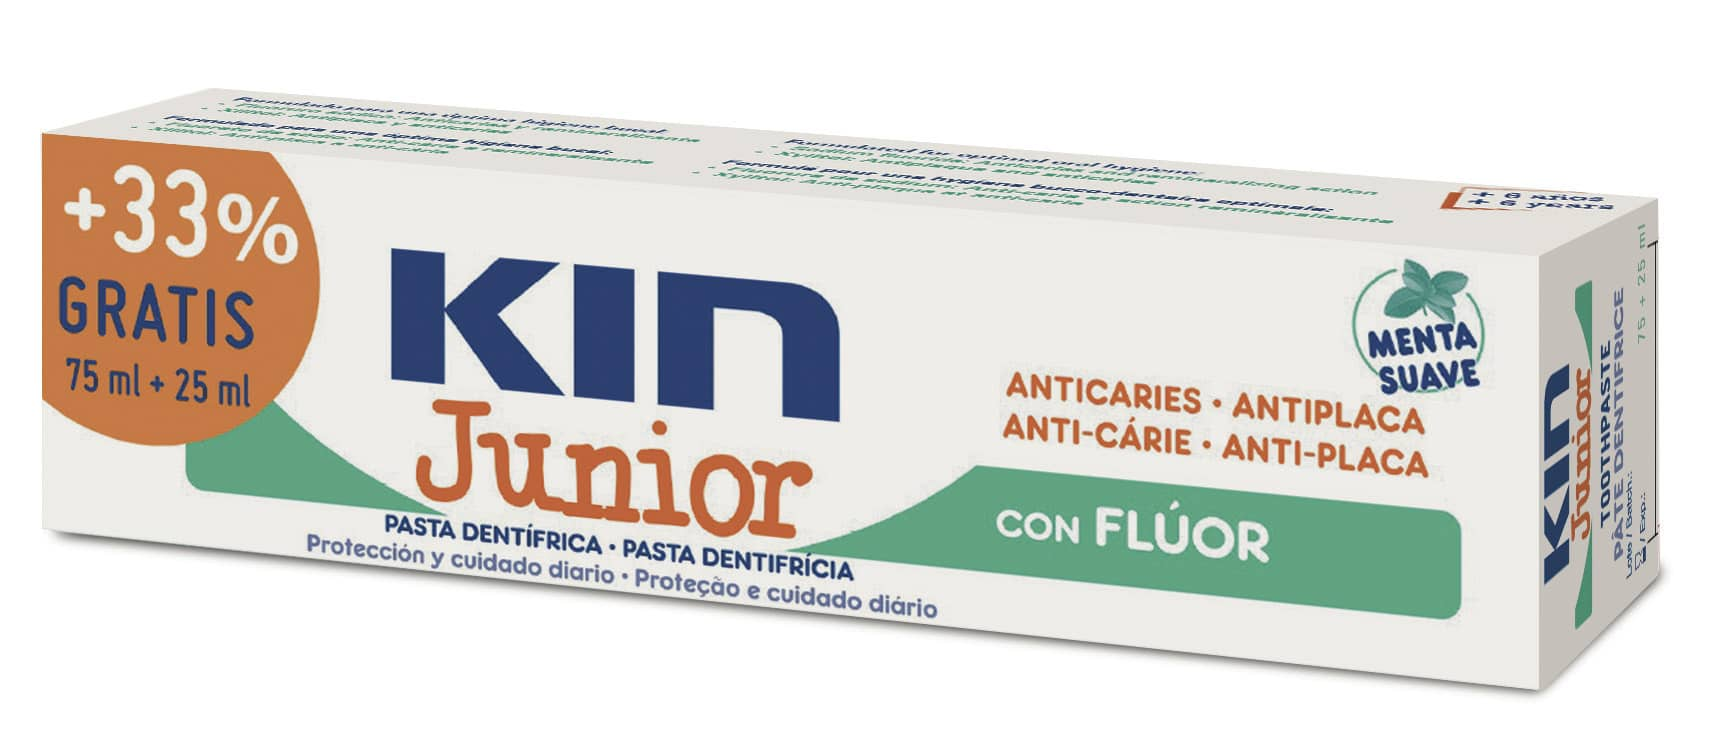 KIN Junior Pasta Dentífrica